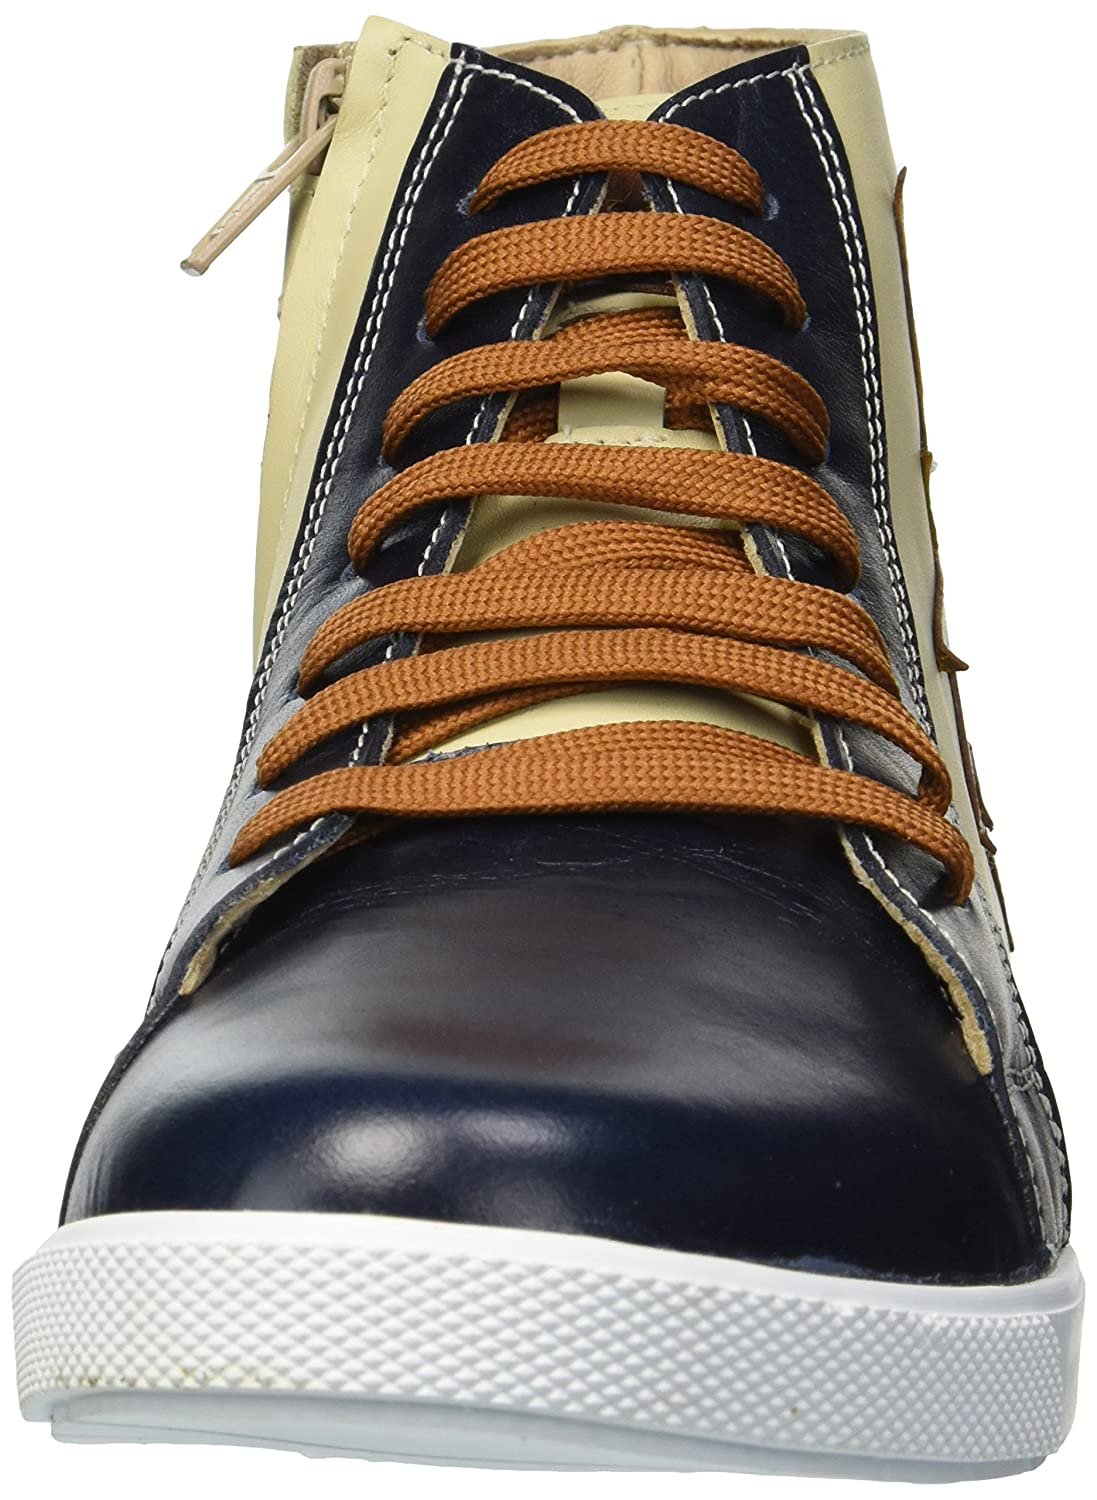 Elephantito Kids The Rock Star Ankle Boot